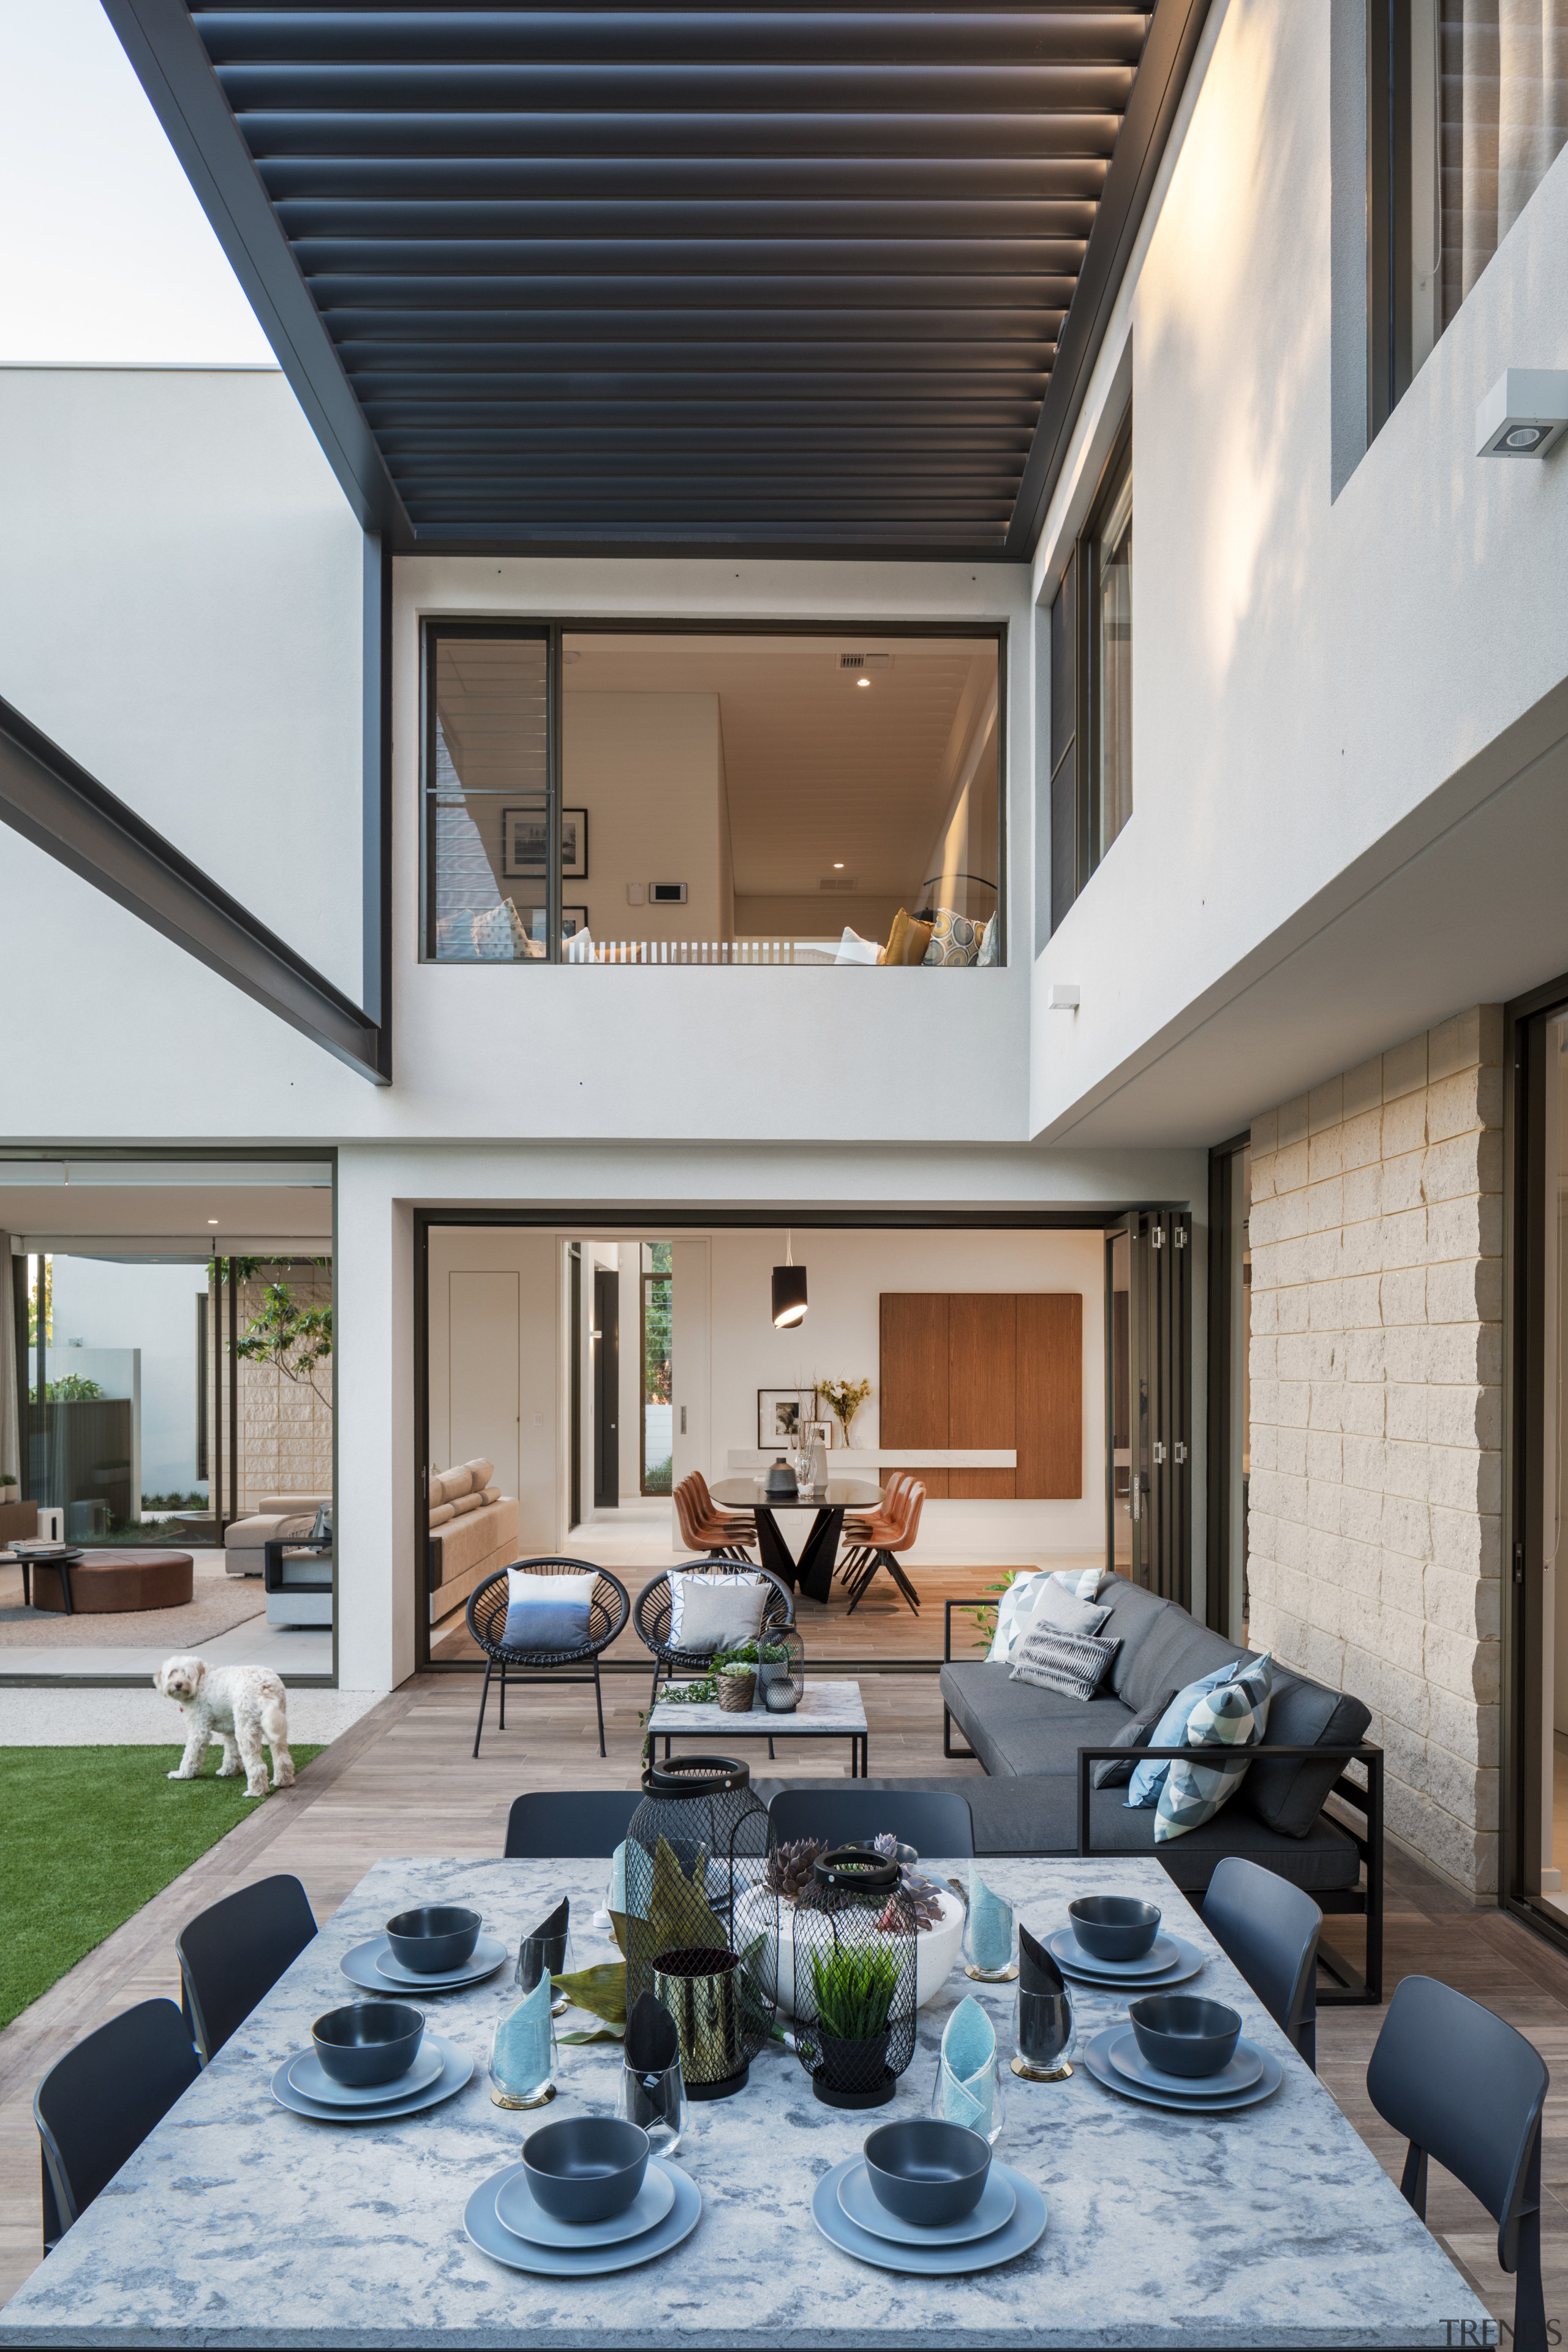 Line of sight – visitors to this home apartment, architecture, backyard, building, ceiling, coffee table, courtyard, daylighting, design, estate, facade, floor, furniture, home, house, interior design, living room, loft, patio, property, real estate, residential area, roof, room, table, gray